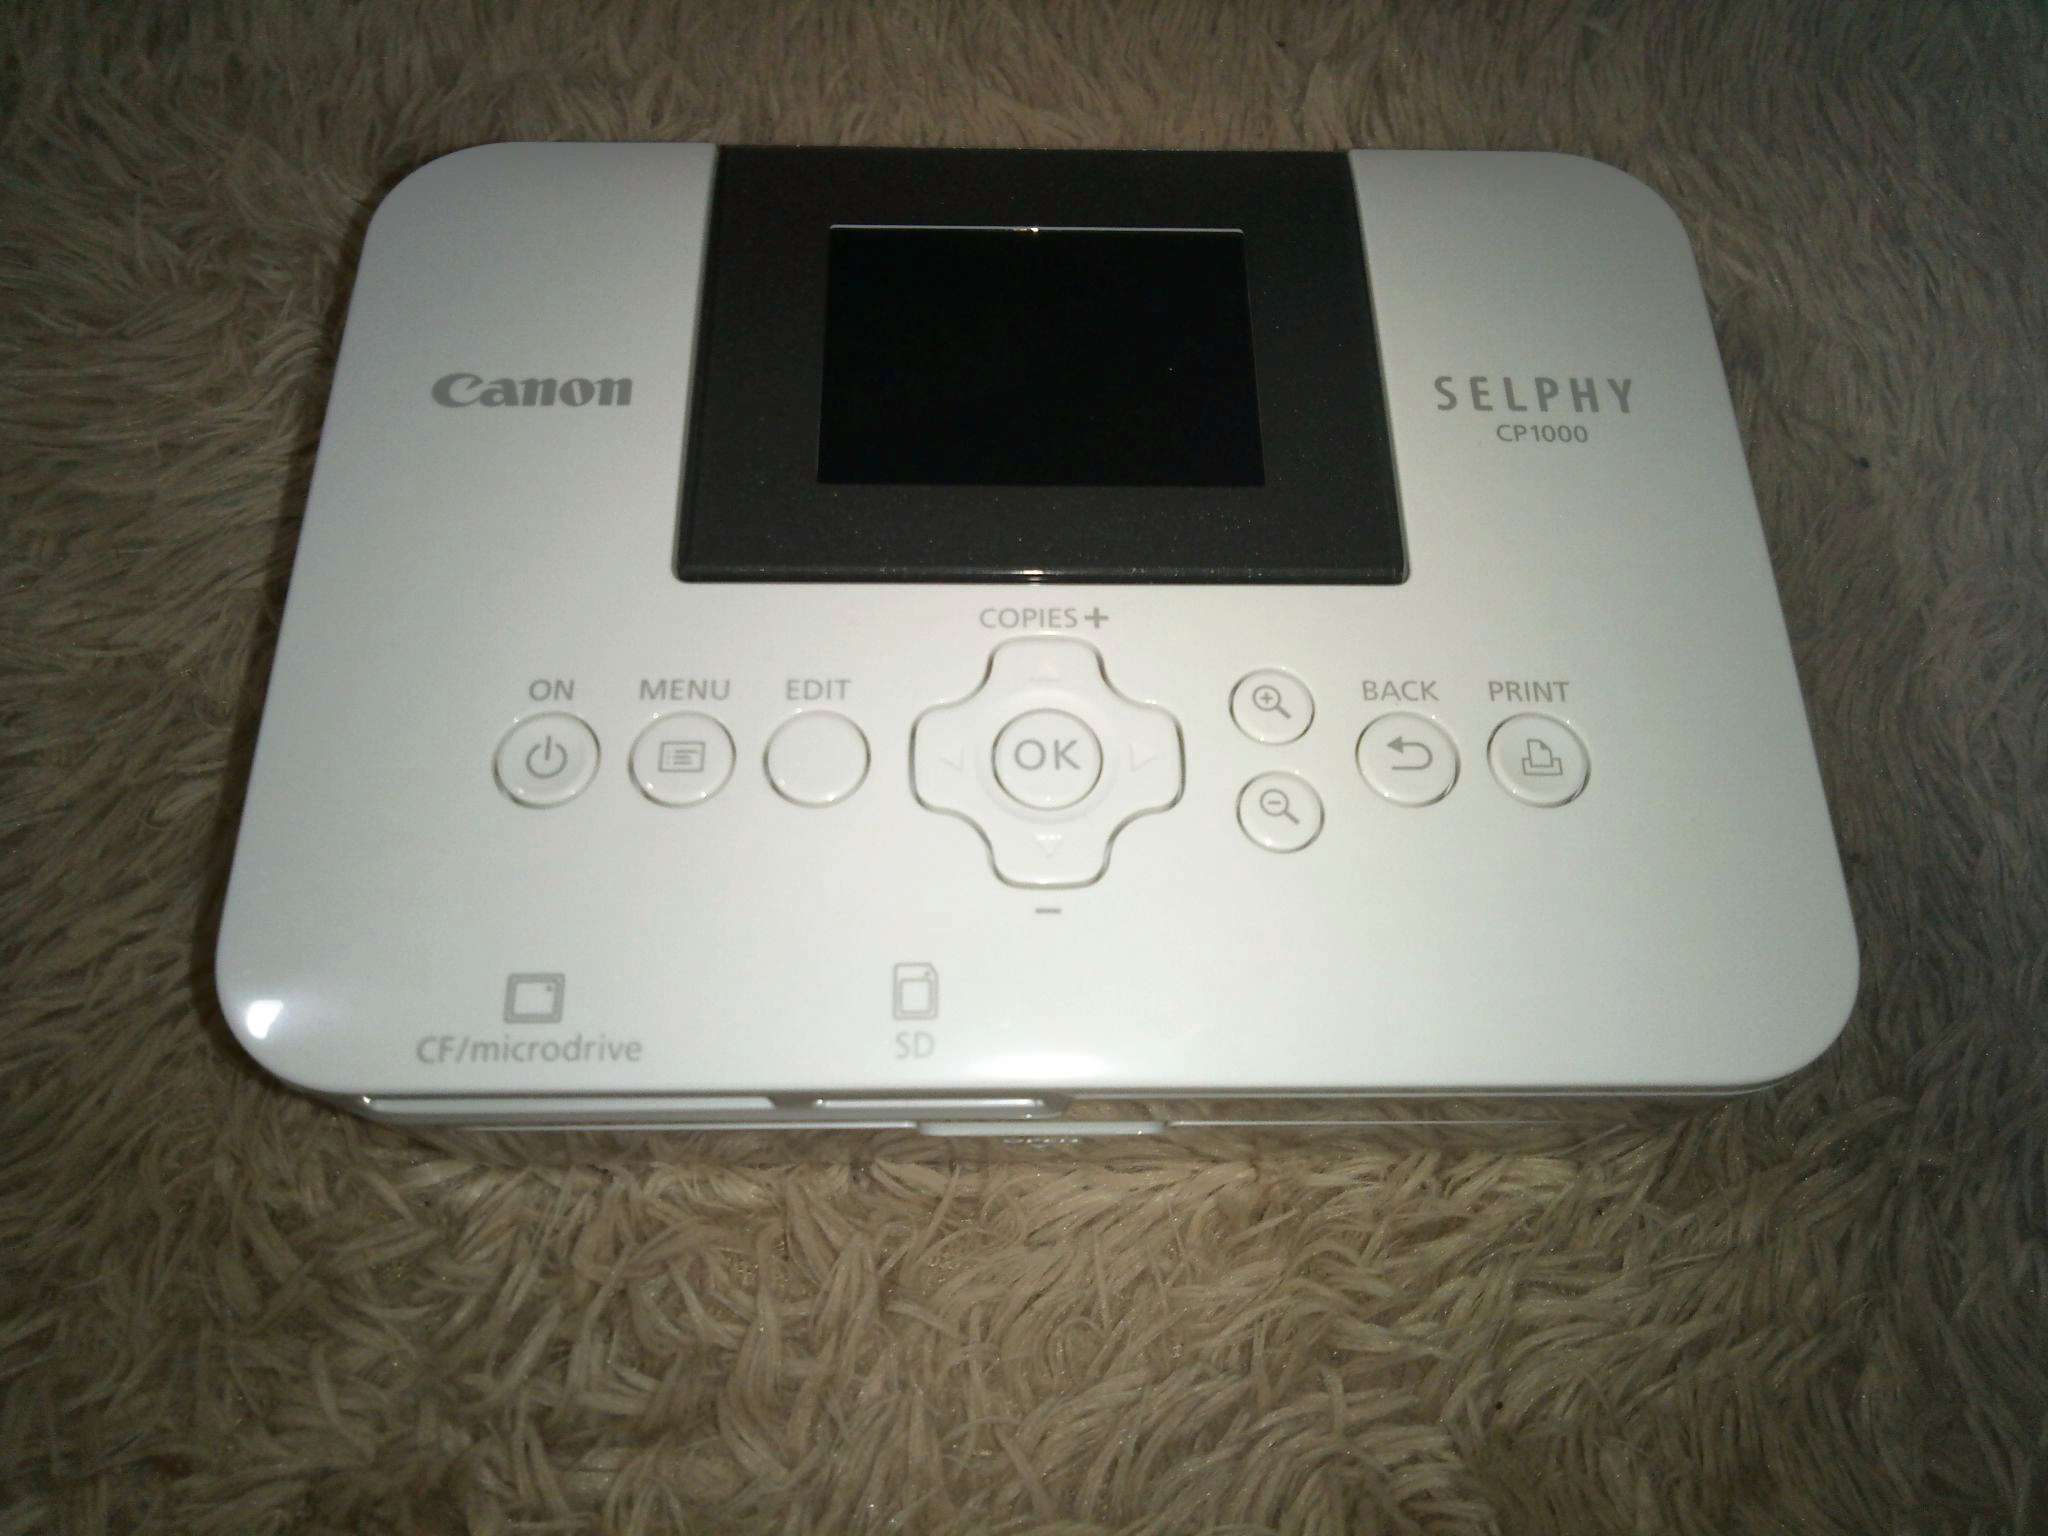 Canon Selphy Cp 1000 White Cp1000 Compact Photo Printer